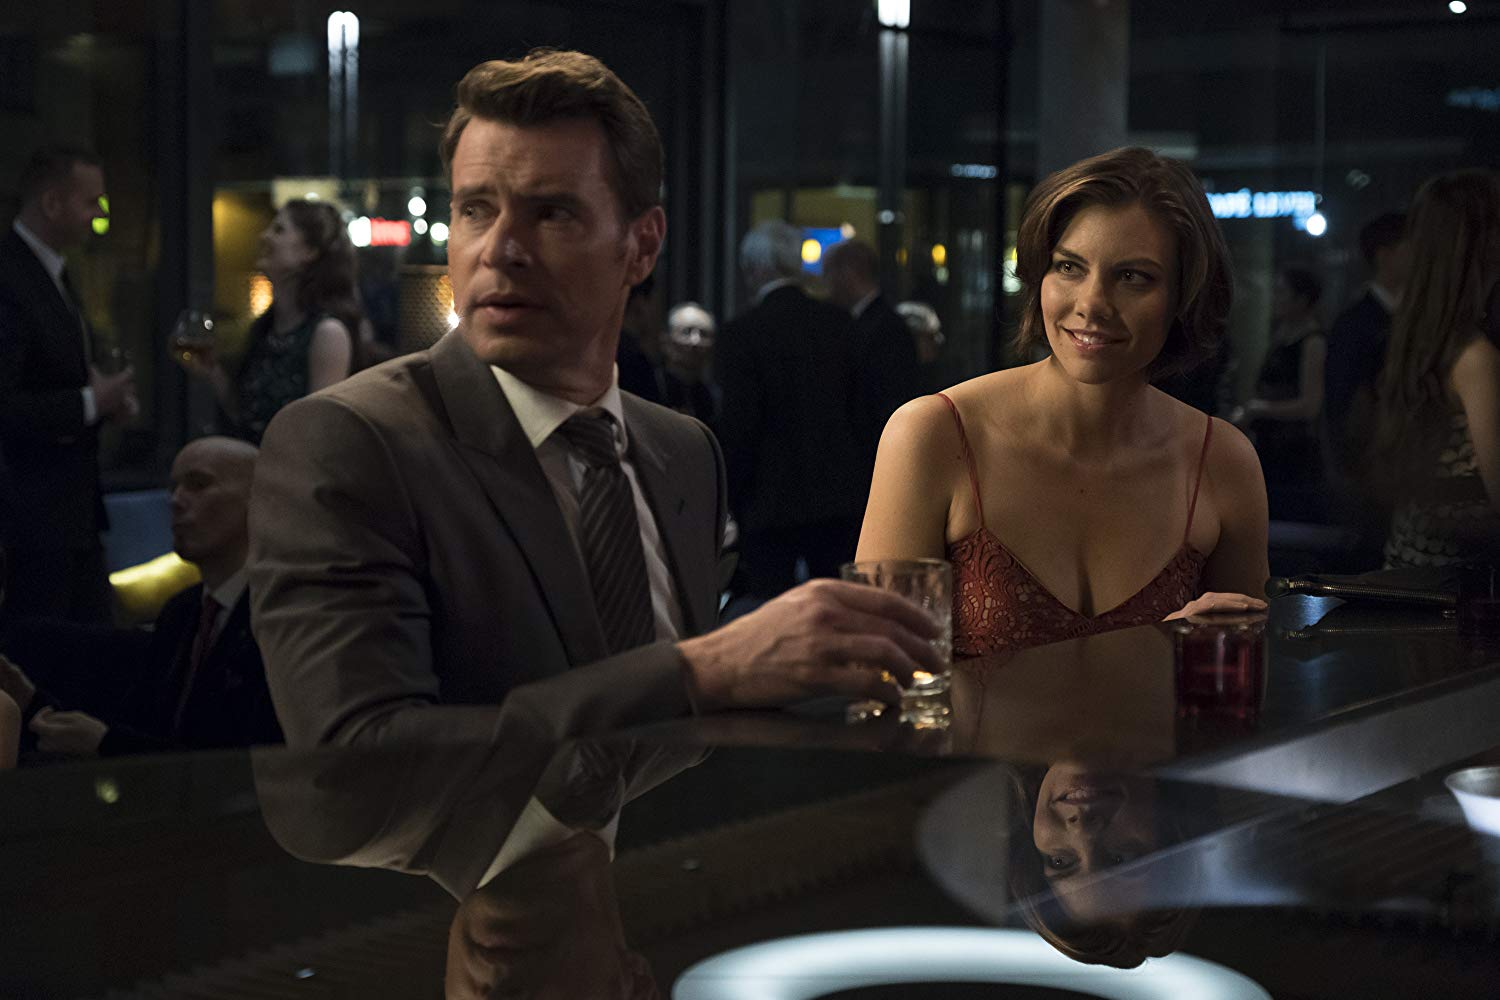 Scott Foley and Lauren Cohan in 'Whiskey Cavalier'. (Source: IMDB)